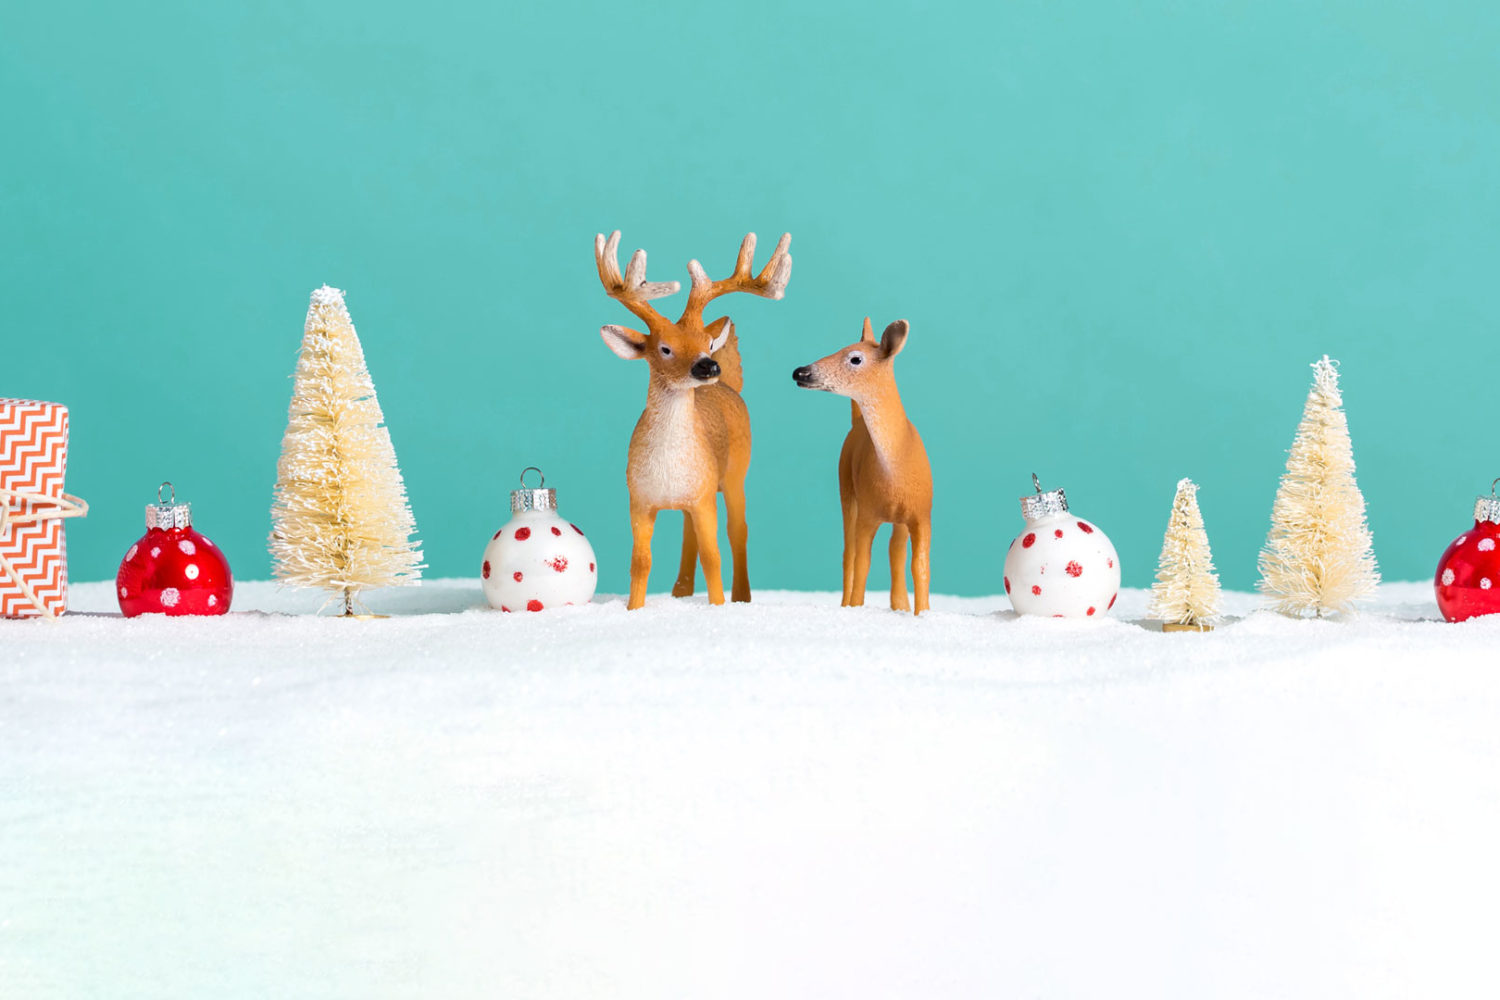 500px presents our second annual Questmas challenge